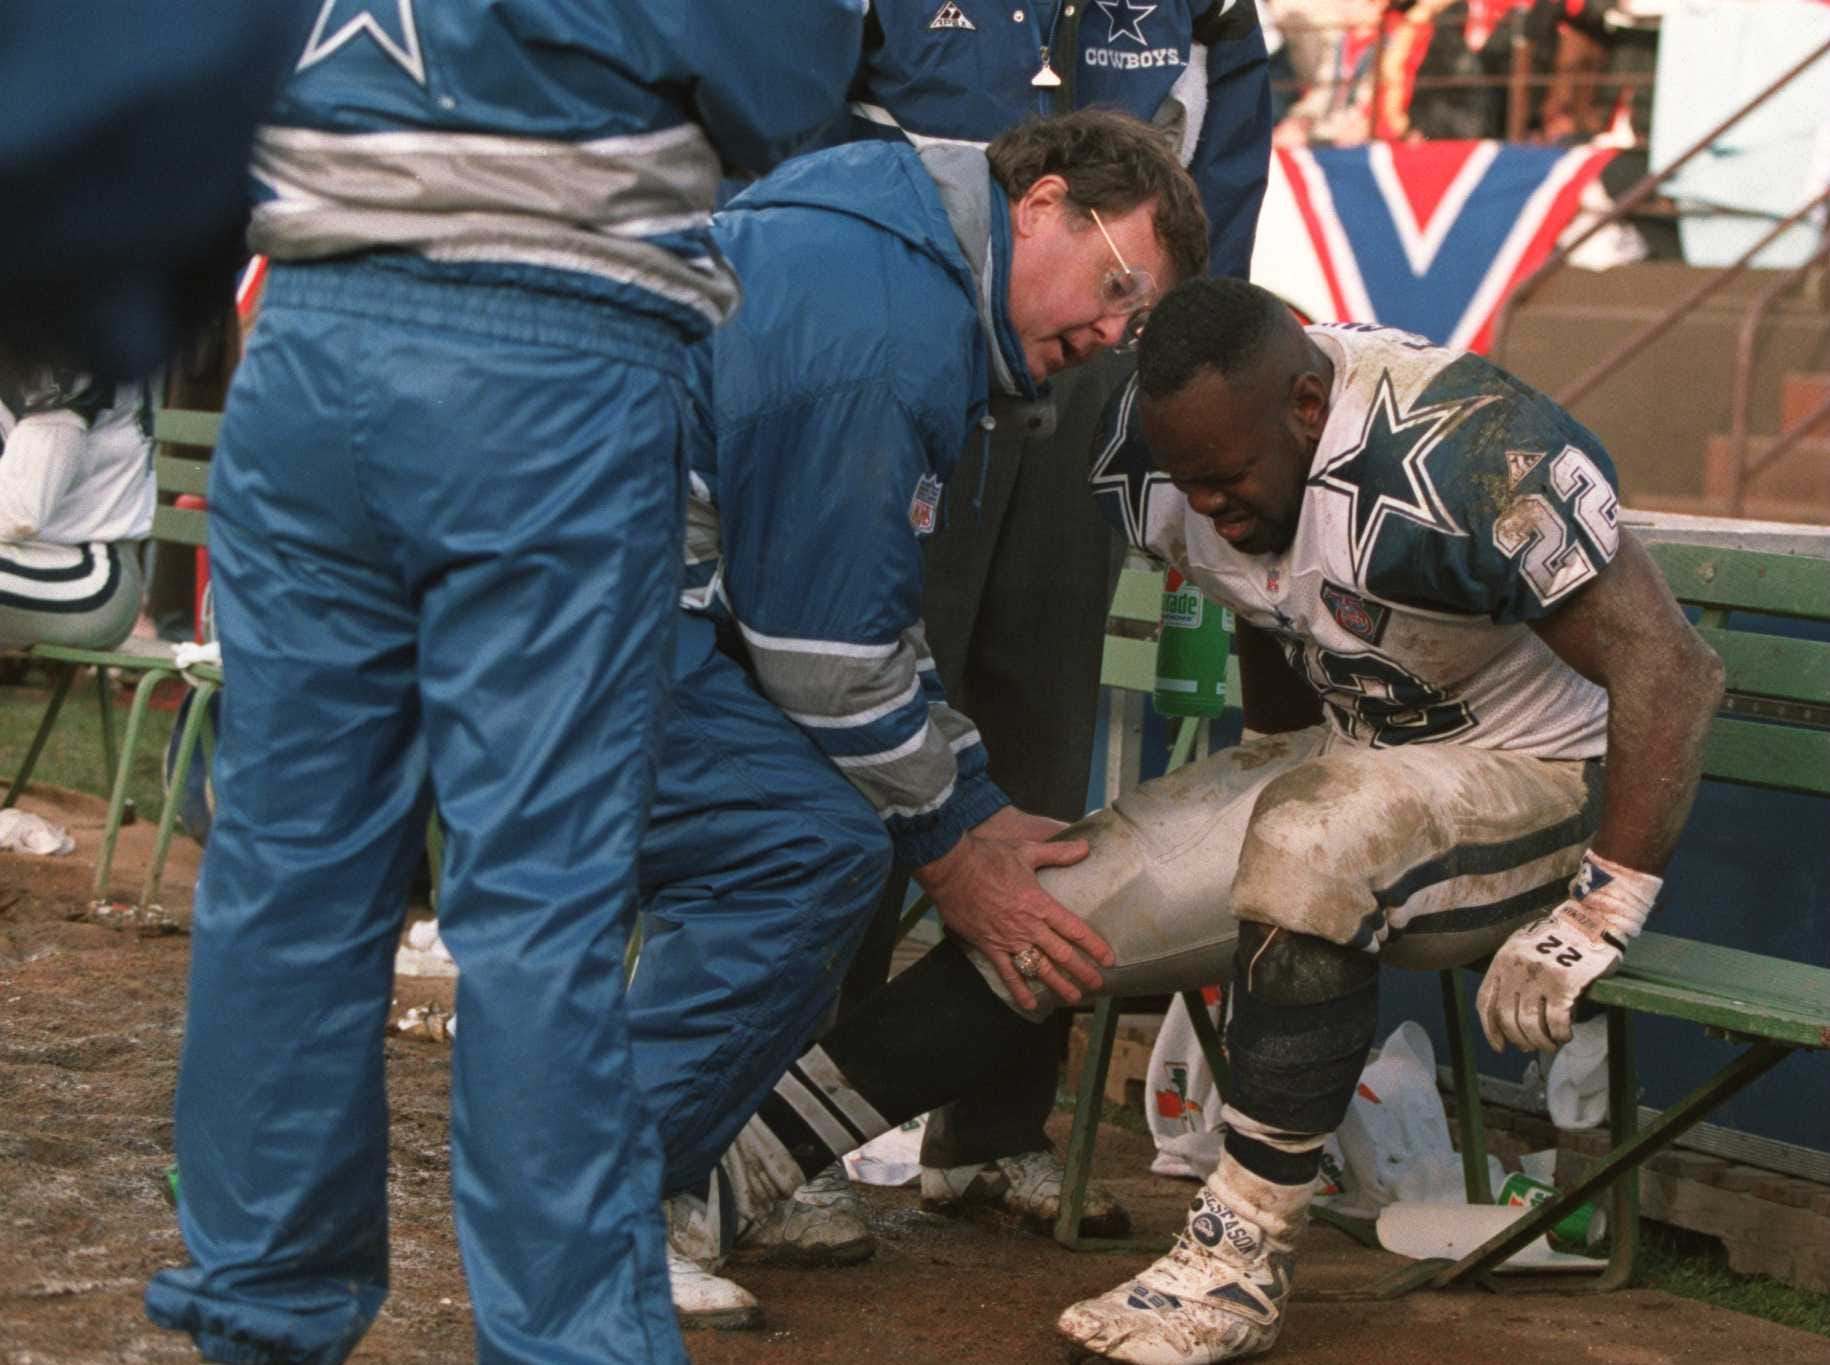 15 JAN 1995:  DALLAS RUNNING BACK EMMITT SMITH IS WORKED ON BY A DALLAS TRAINER AFTER HE PULLED HIS RIGHT HAMSTRING DURING THE 49ERS 38-28 VICTORY OVER THE DALLAS COWBOYS IN THE NFC CHAMPIONSHIP GAME AT CANDLESTICK PARK IN SAN FRANCISCO, CALIFORNIA. Manda